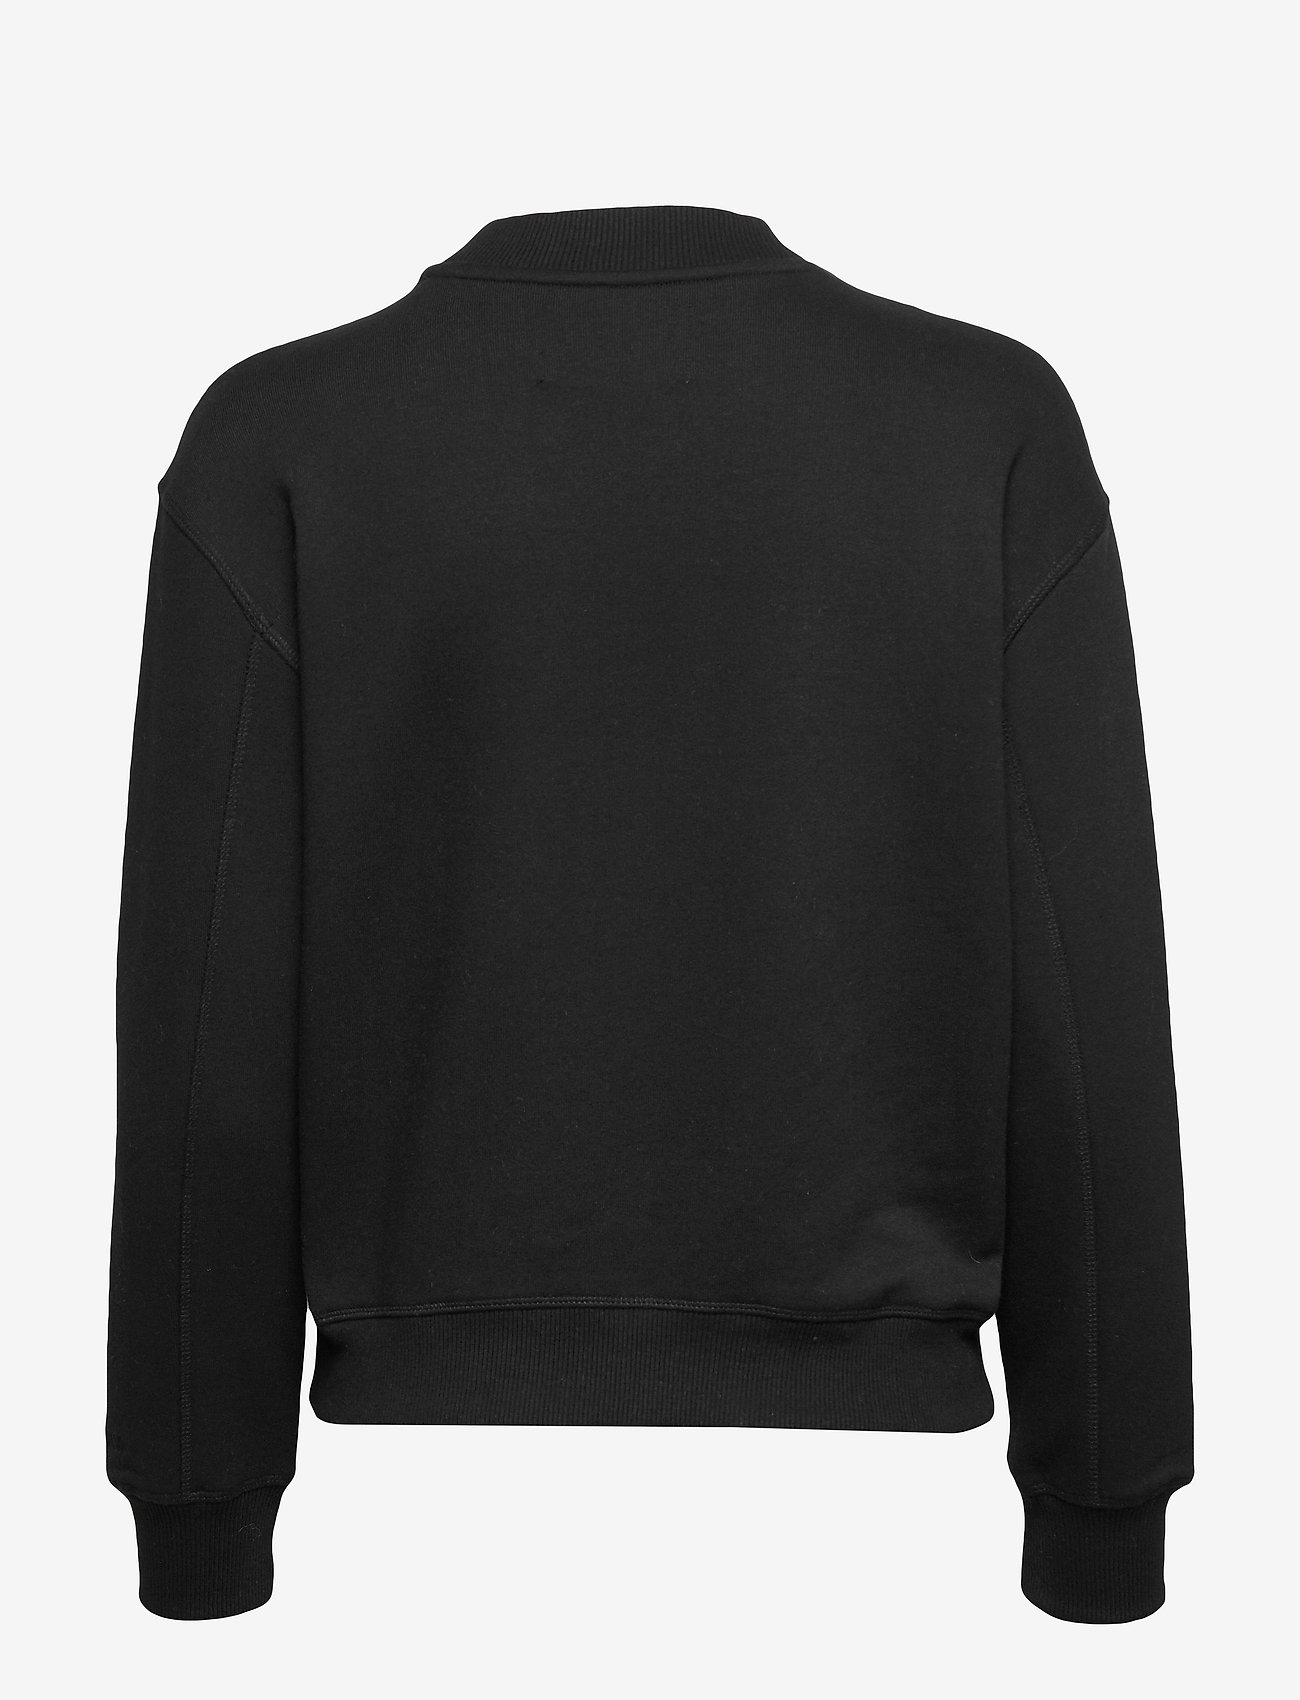 Calvin Klein Jeans - CK EMBROIDERY REGULAR CREW NECK - sweatshirts - ck black - 1